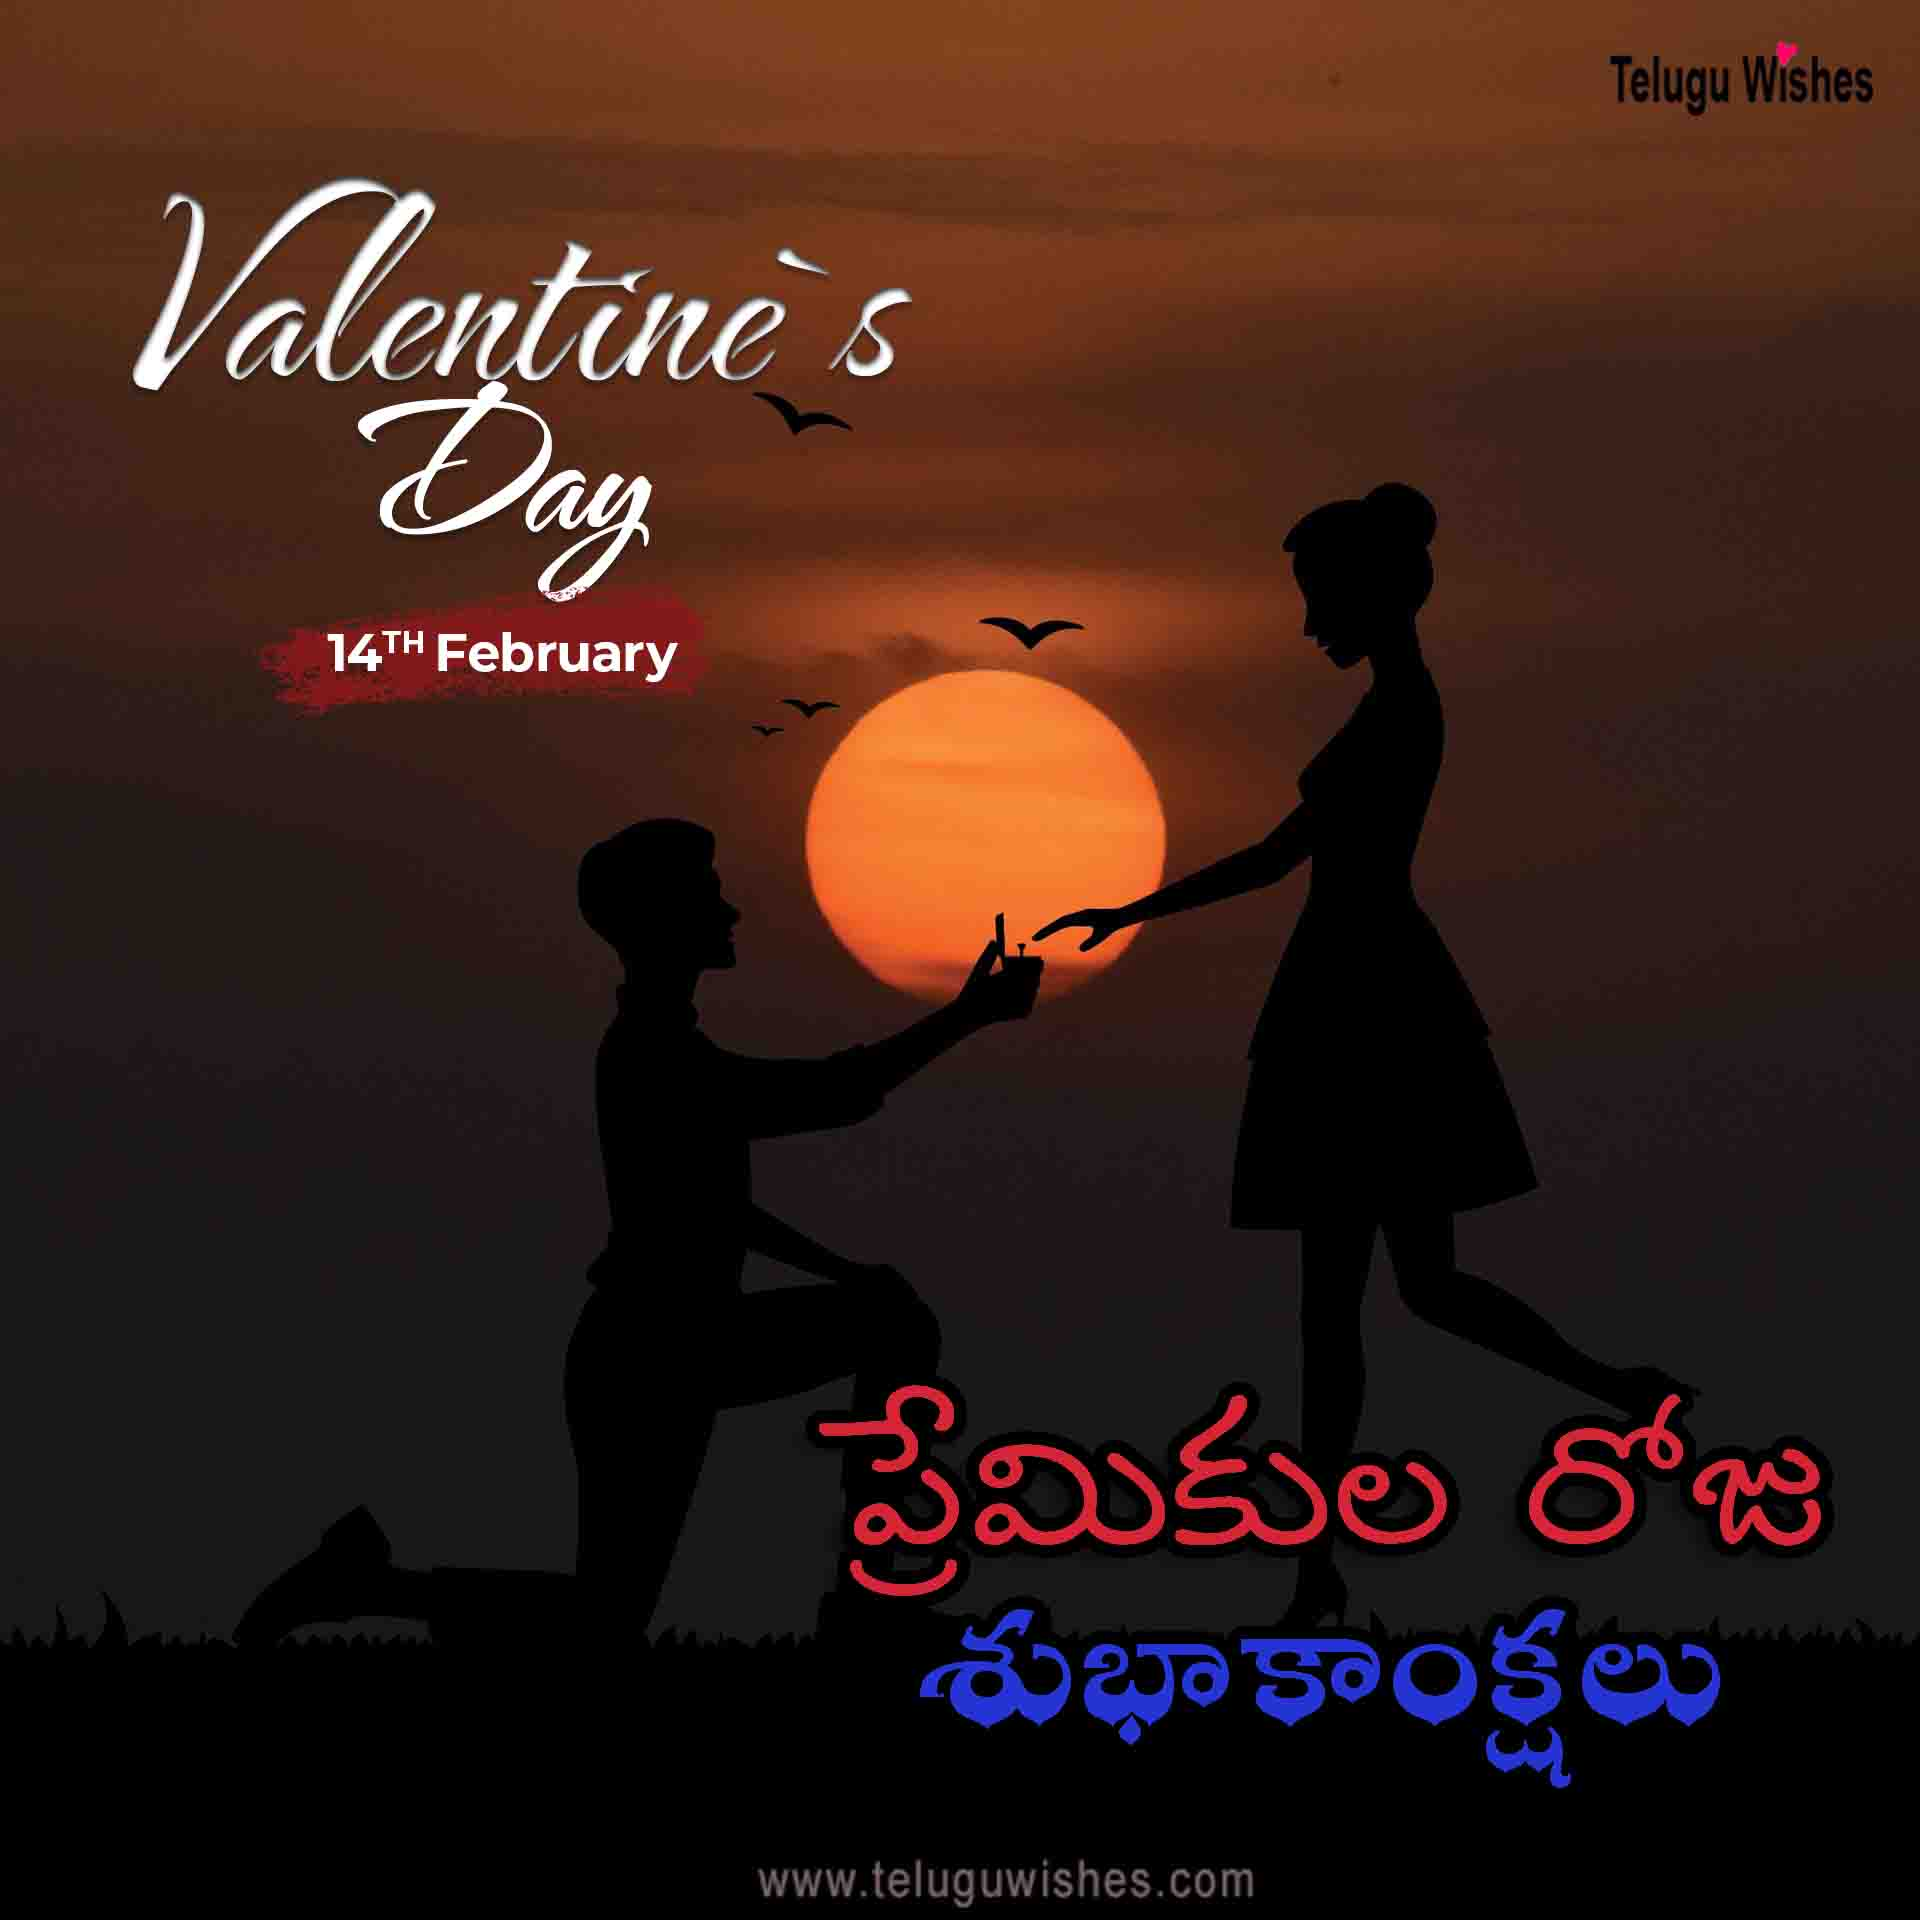 Valentine's Day wishes for wife in Telugu